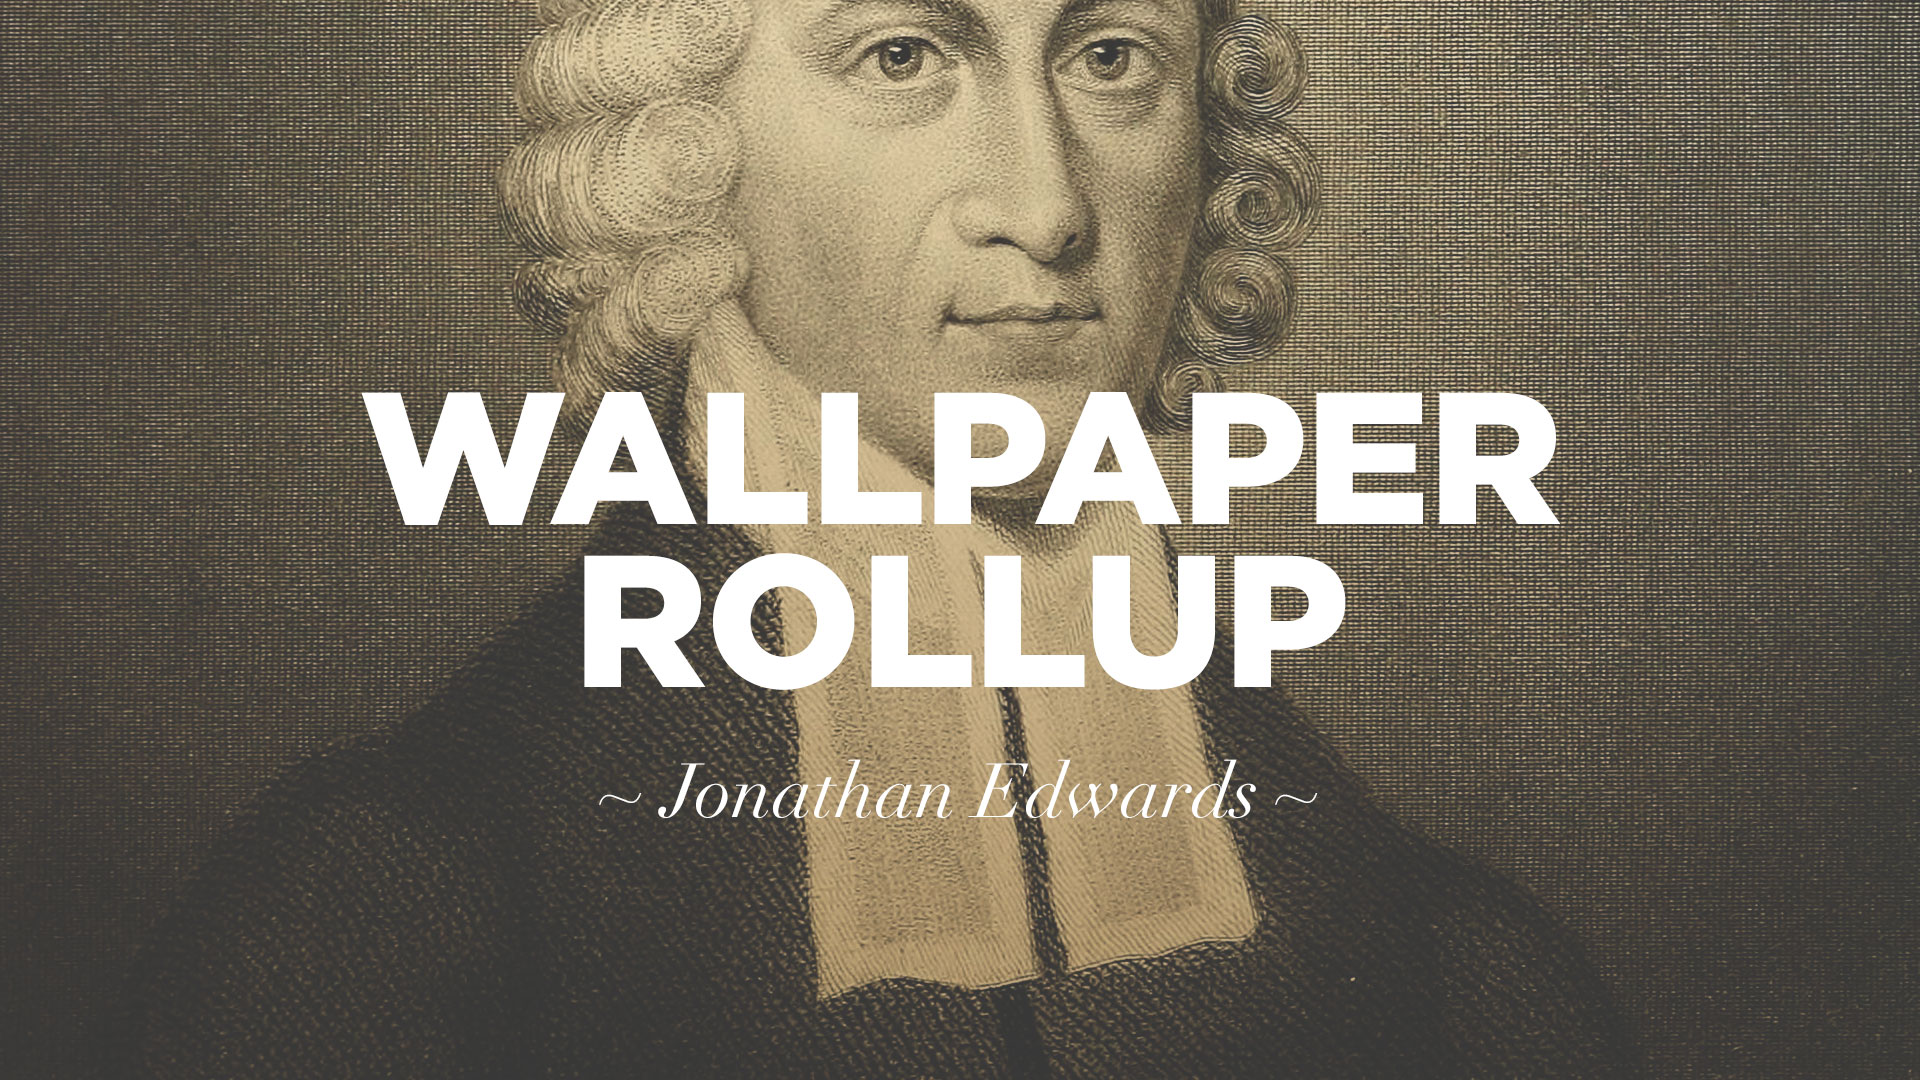 Wallpaper Rollup The Resolutions Of Jonathan Edwards